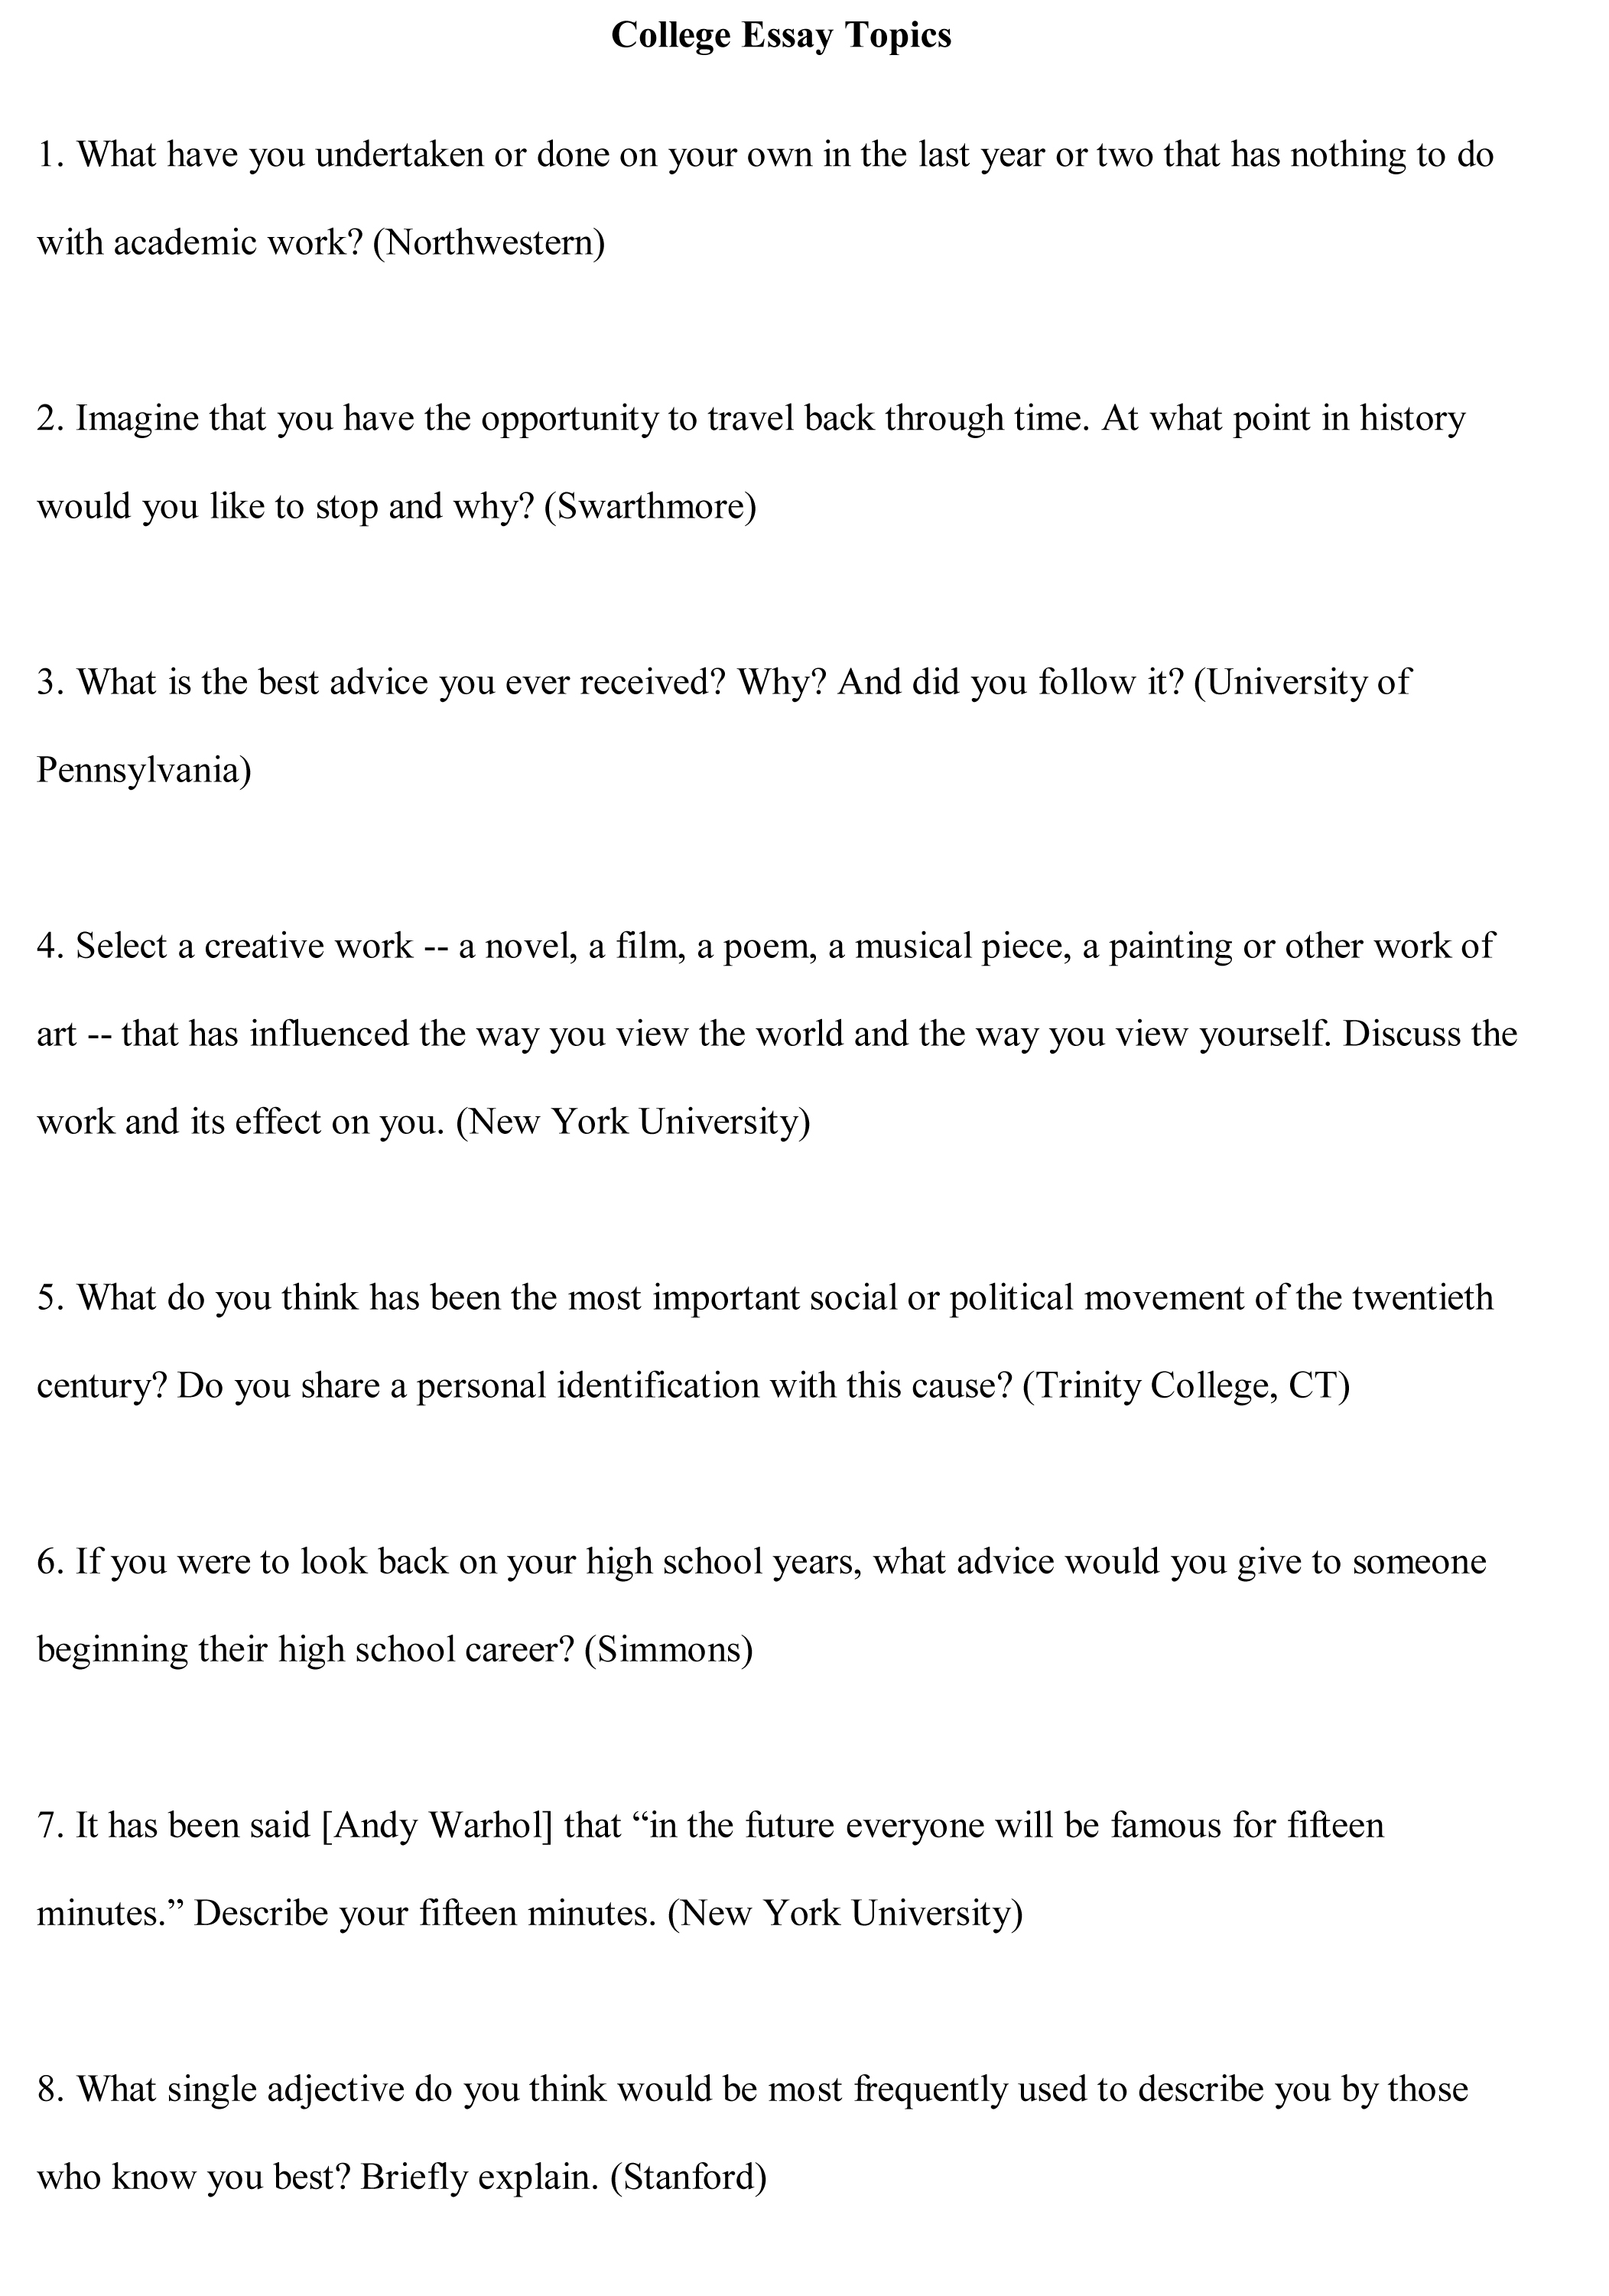 003 Help To Write Essay For Free Online College Topics Sample1 Unbelievable A Full